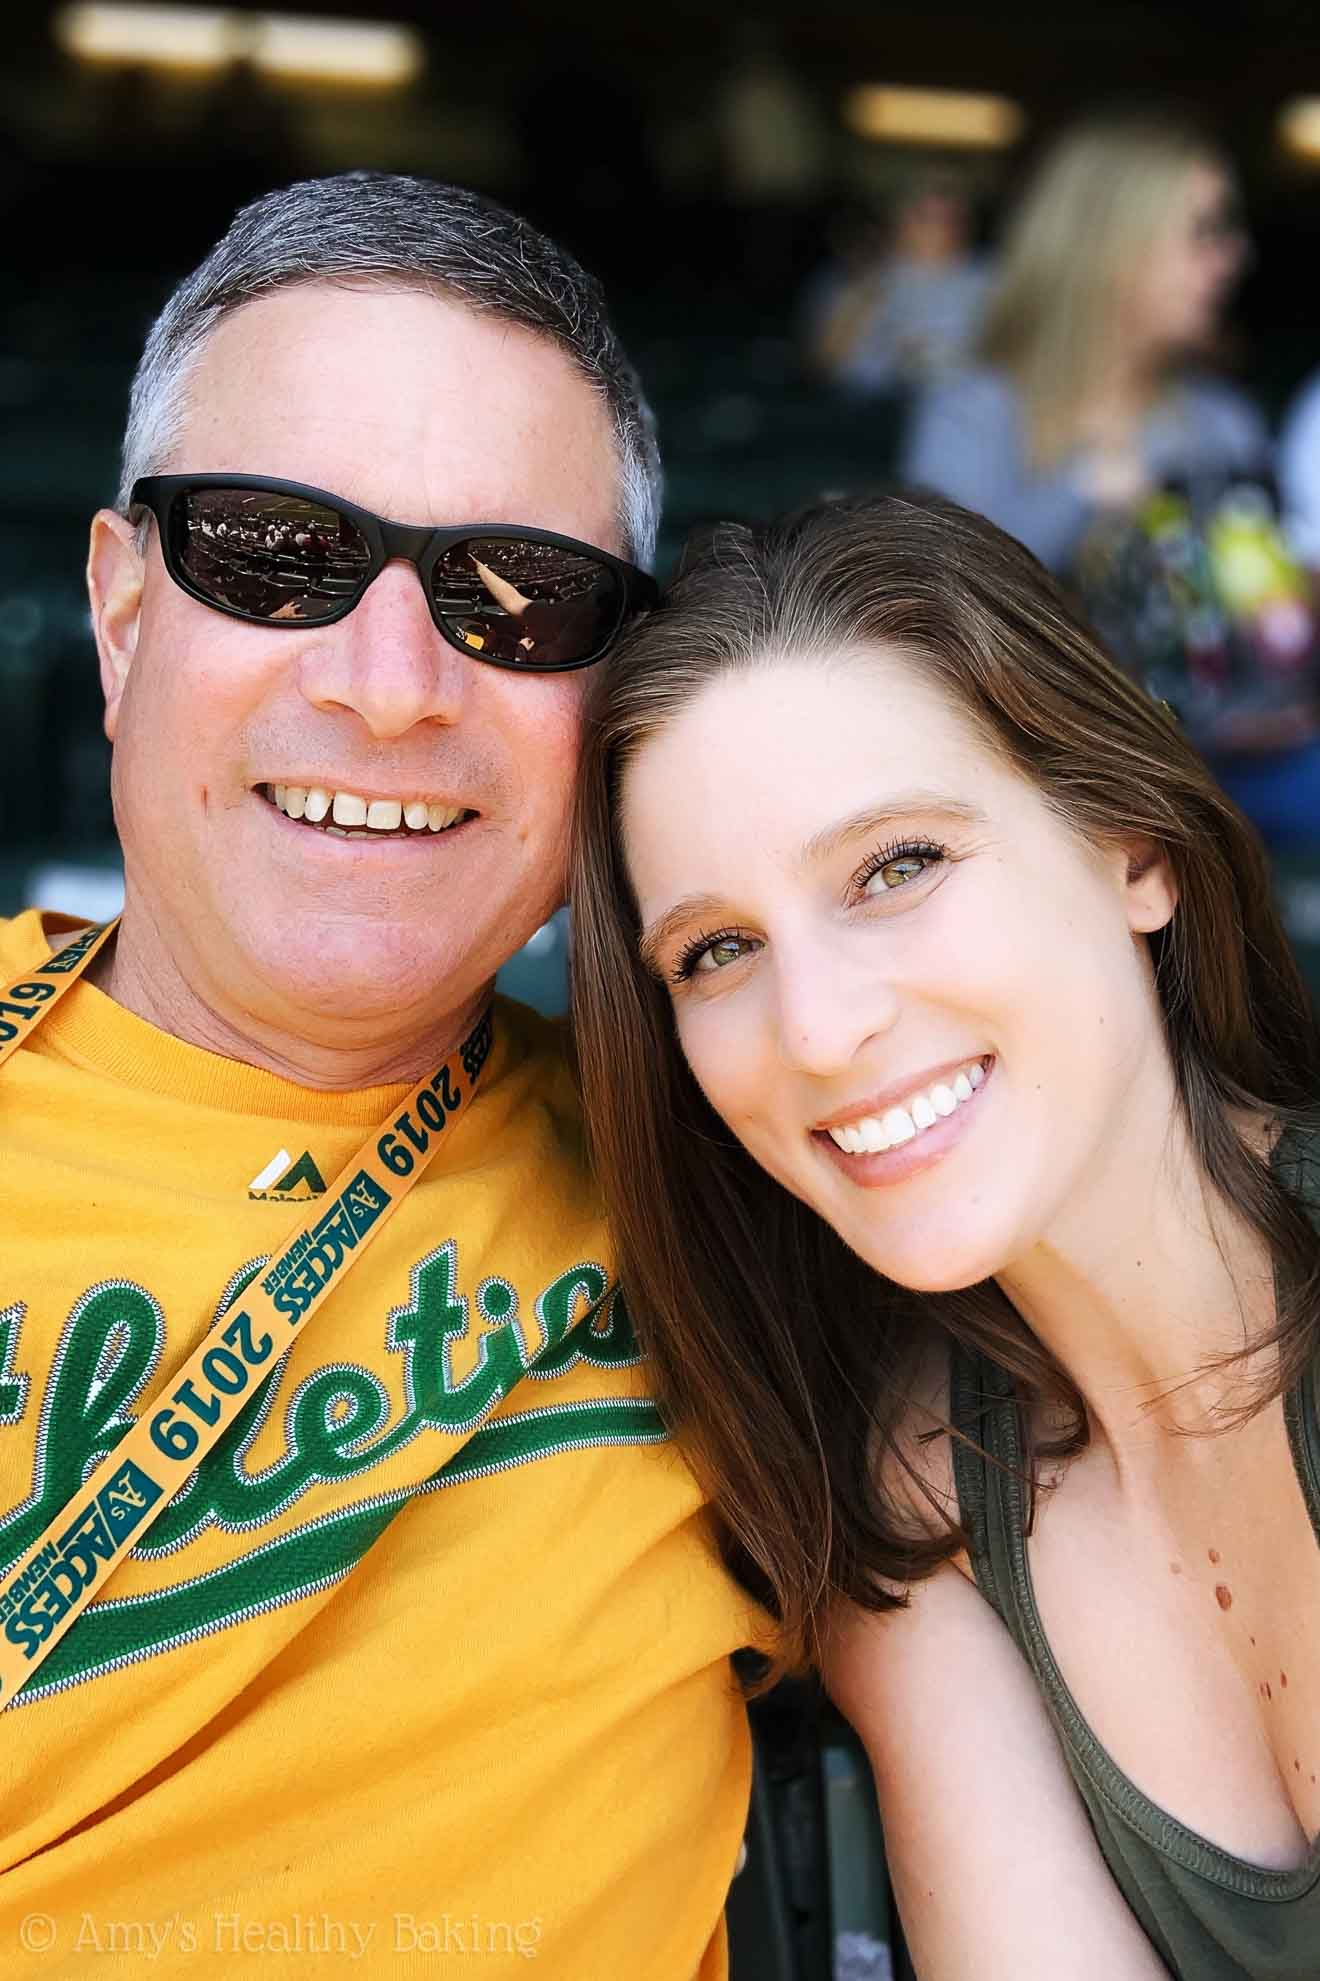 A dad and his young adult daughter at an Oakland A's baseball game